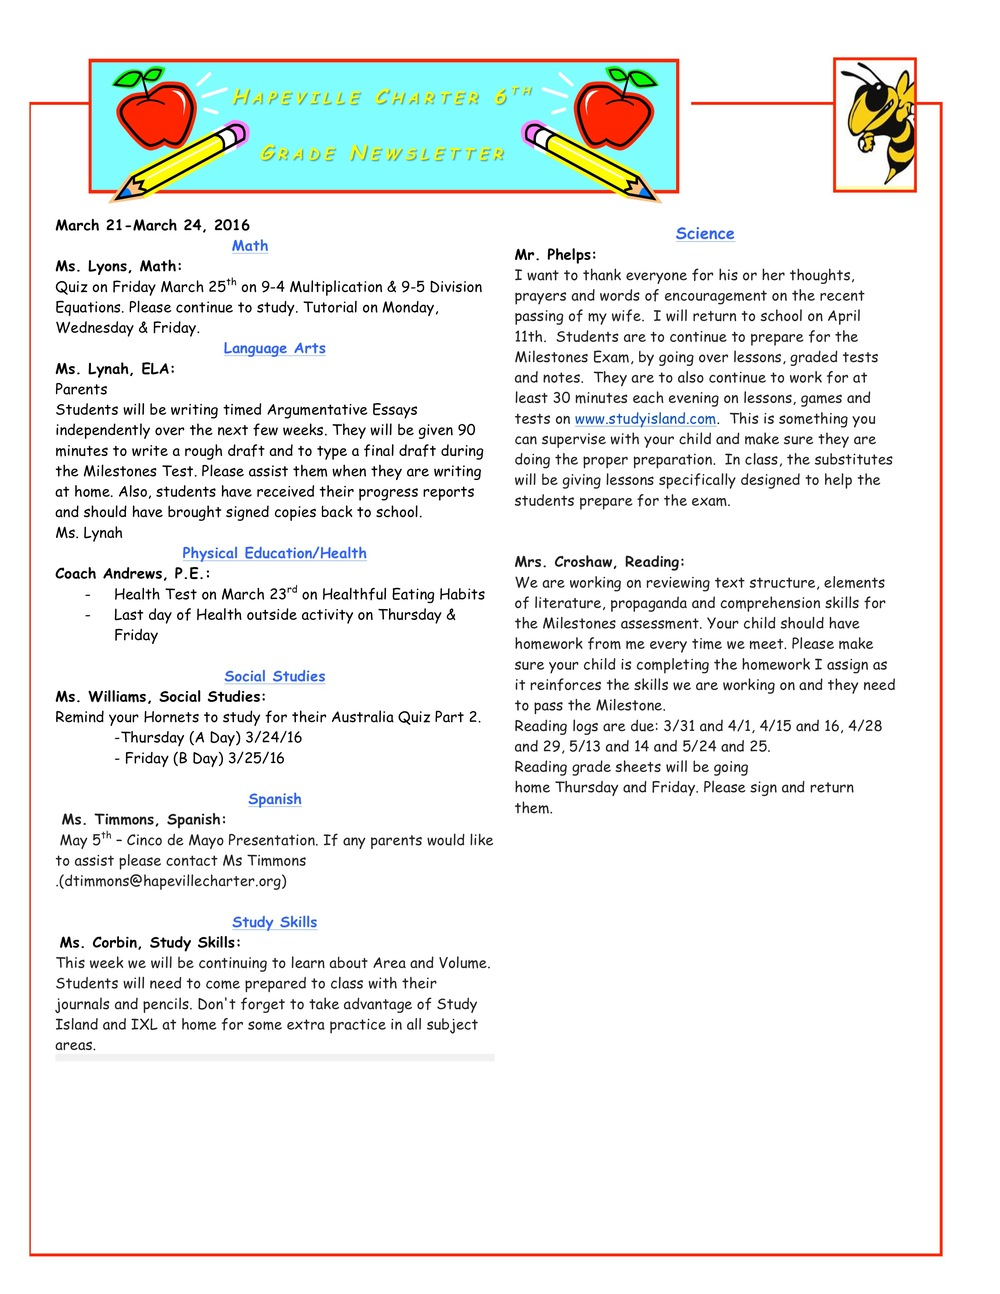 Newsletter Image6th Grade Newsletter 3.21.2016.jpeg